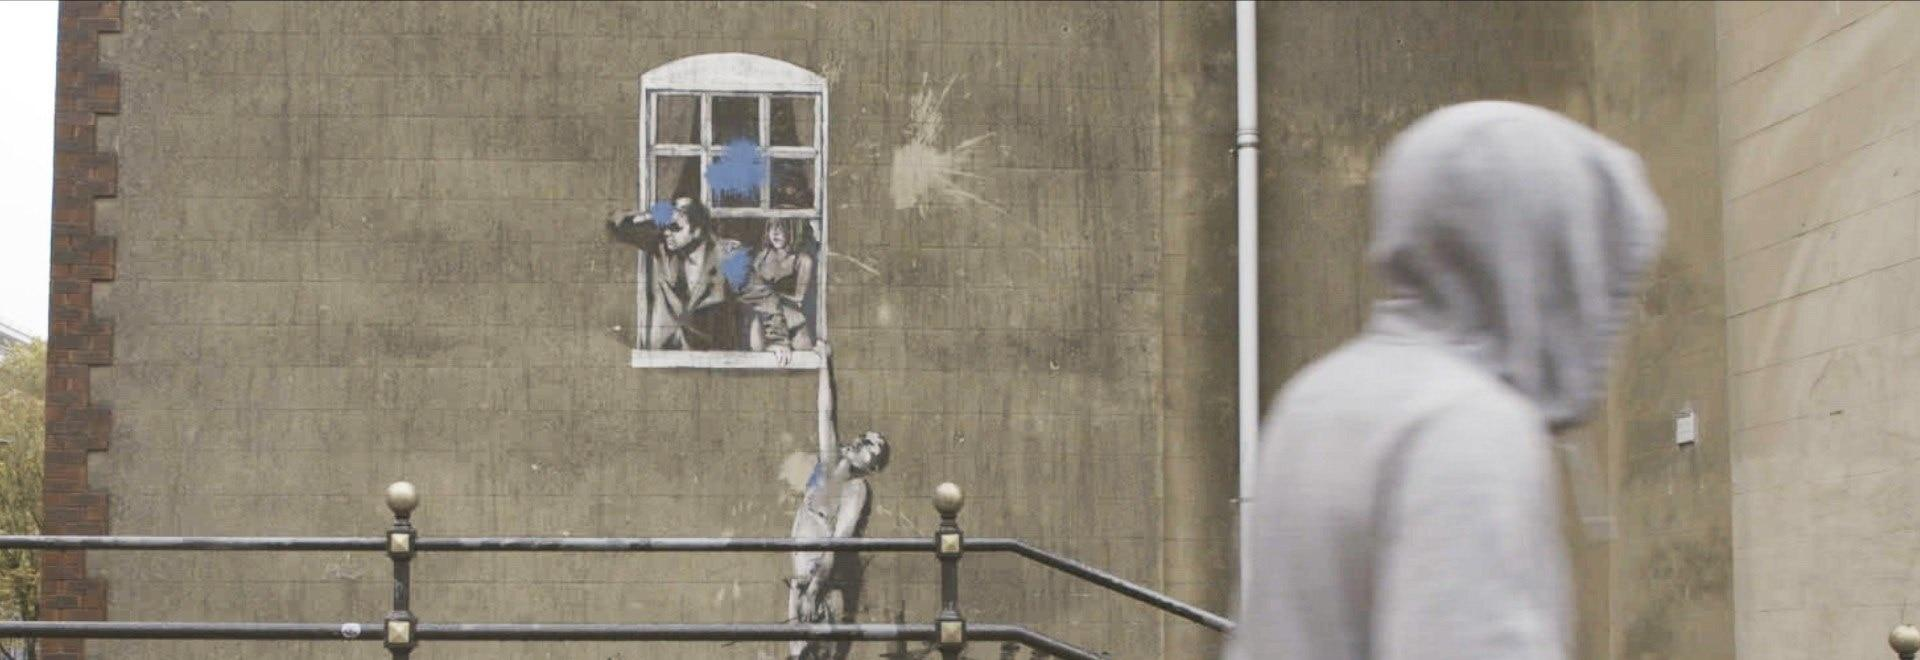 Banksy Most Wanted